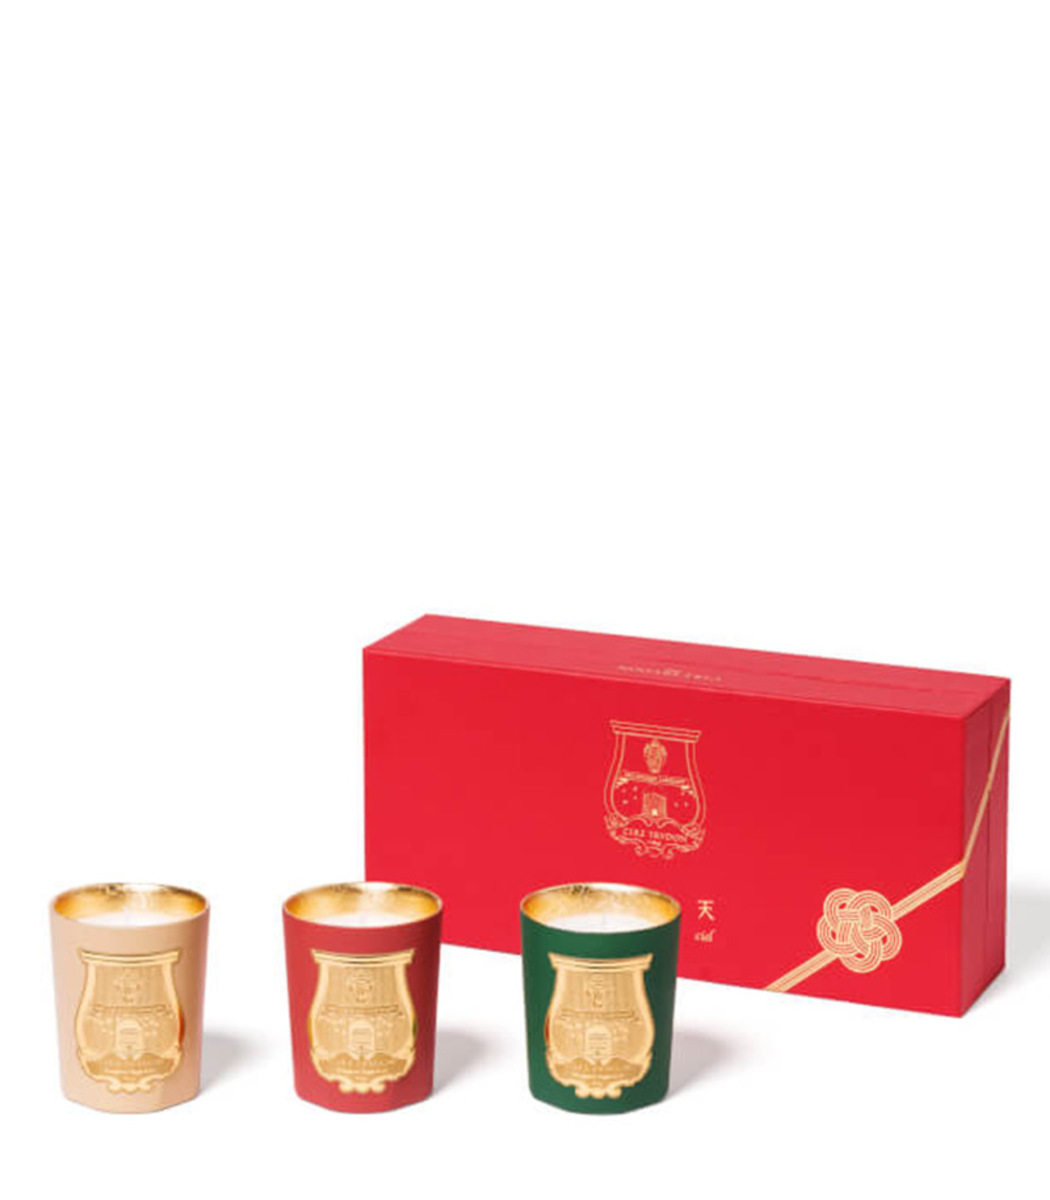 3 Travel Candles